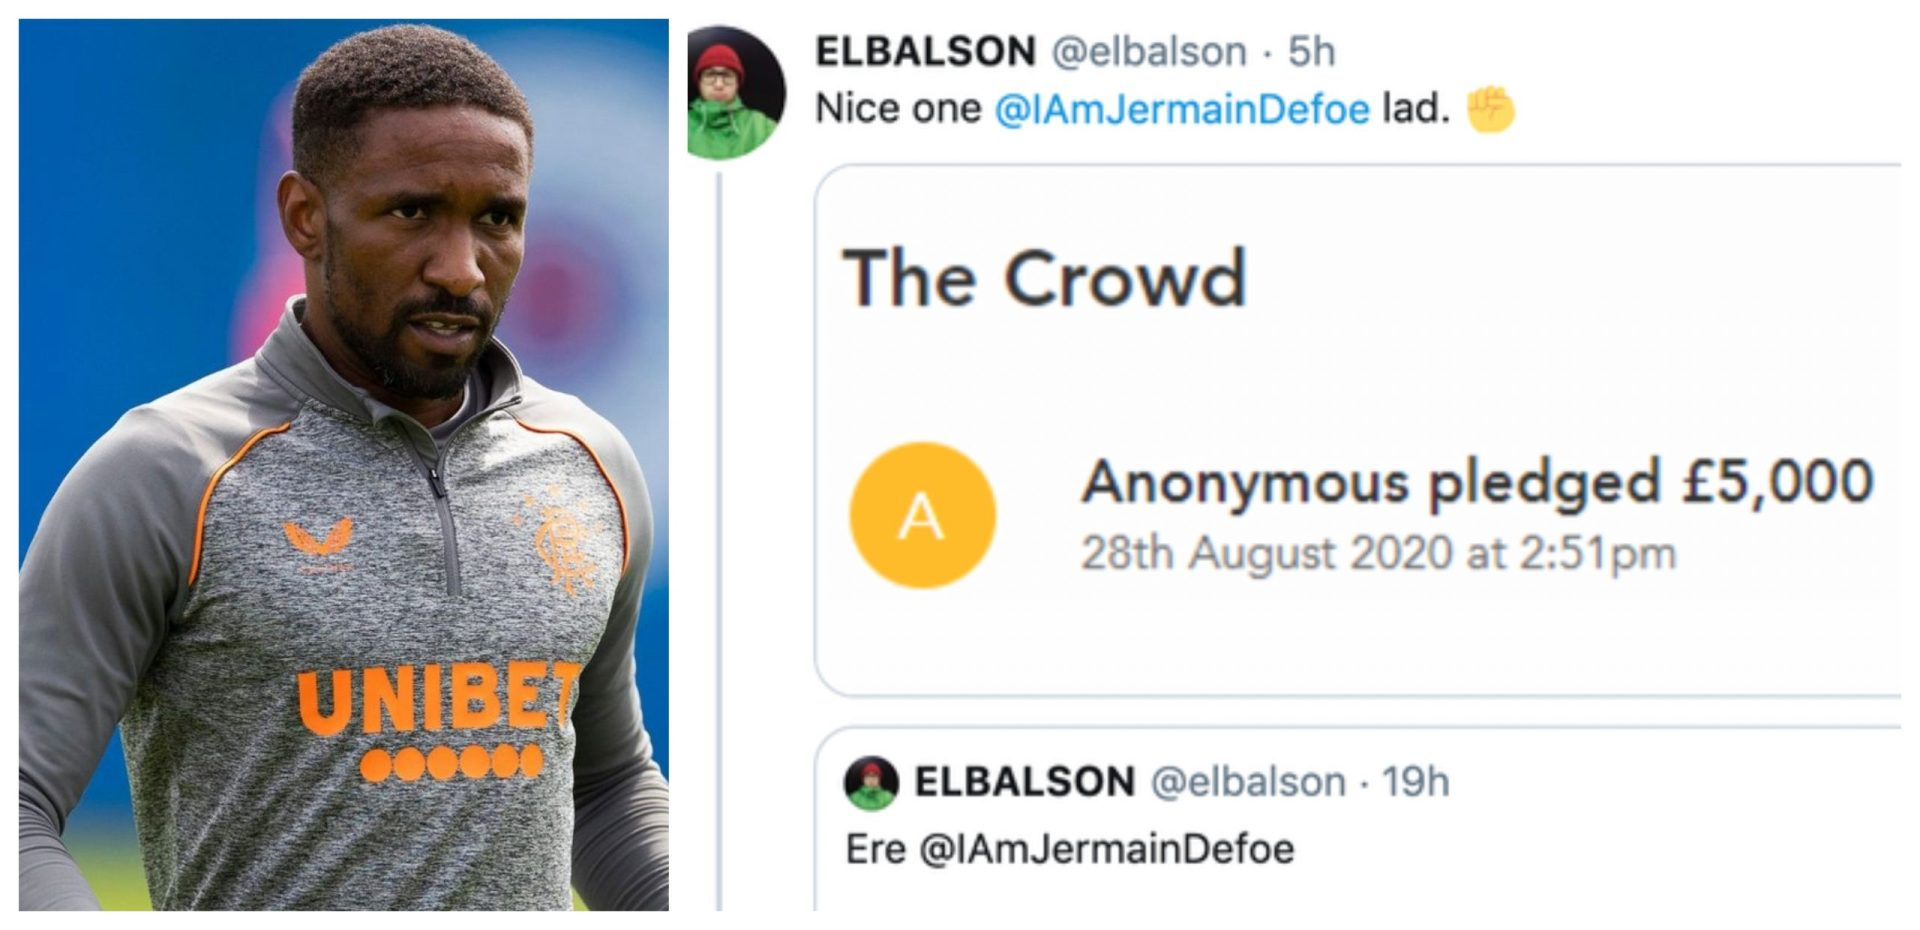 Yours Anonymously: Jermain Defoe behind the mysterious £5,000 donation to Wigan Athletic? - THE SPORTS ROOM